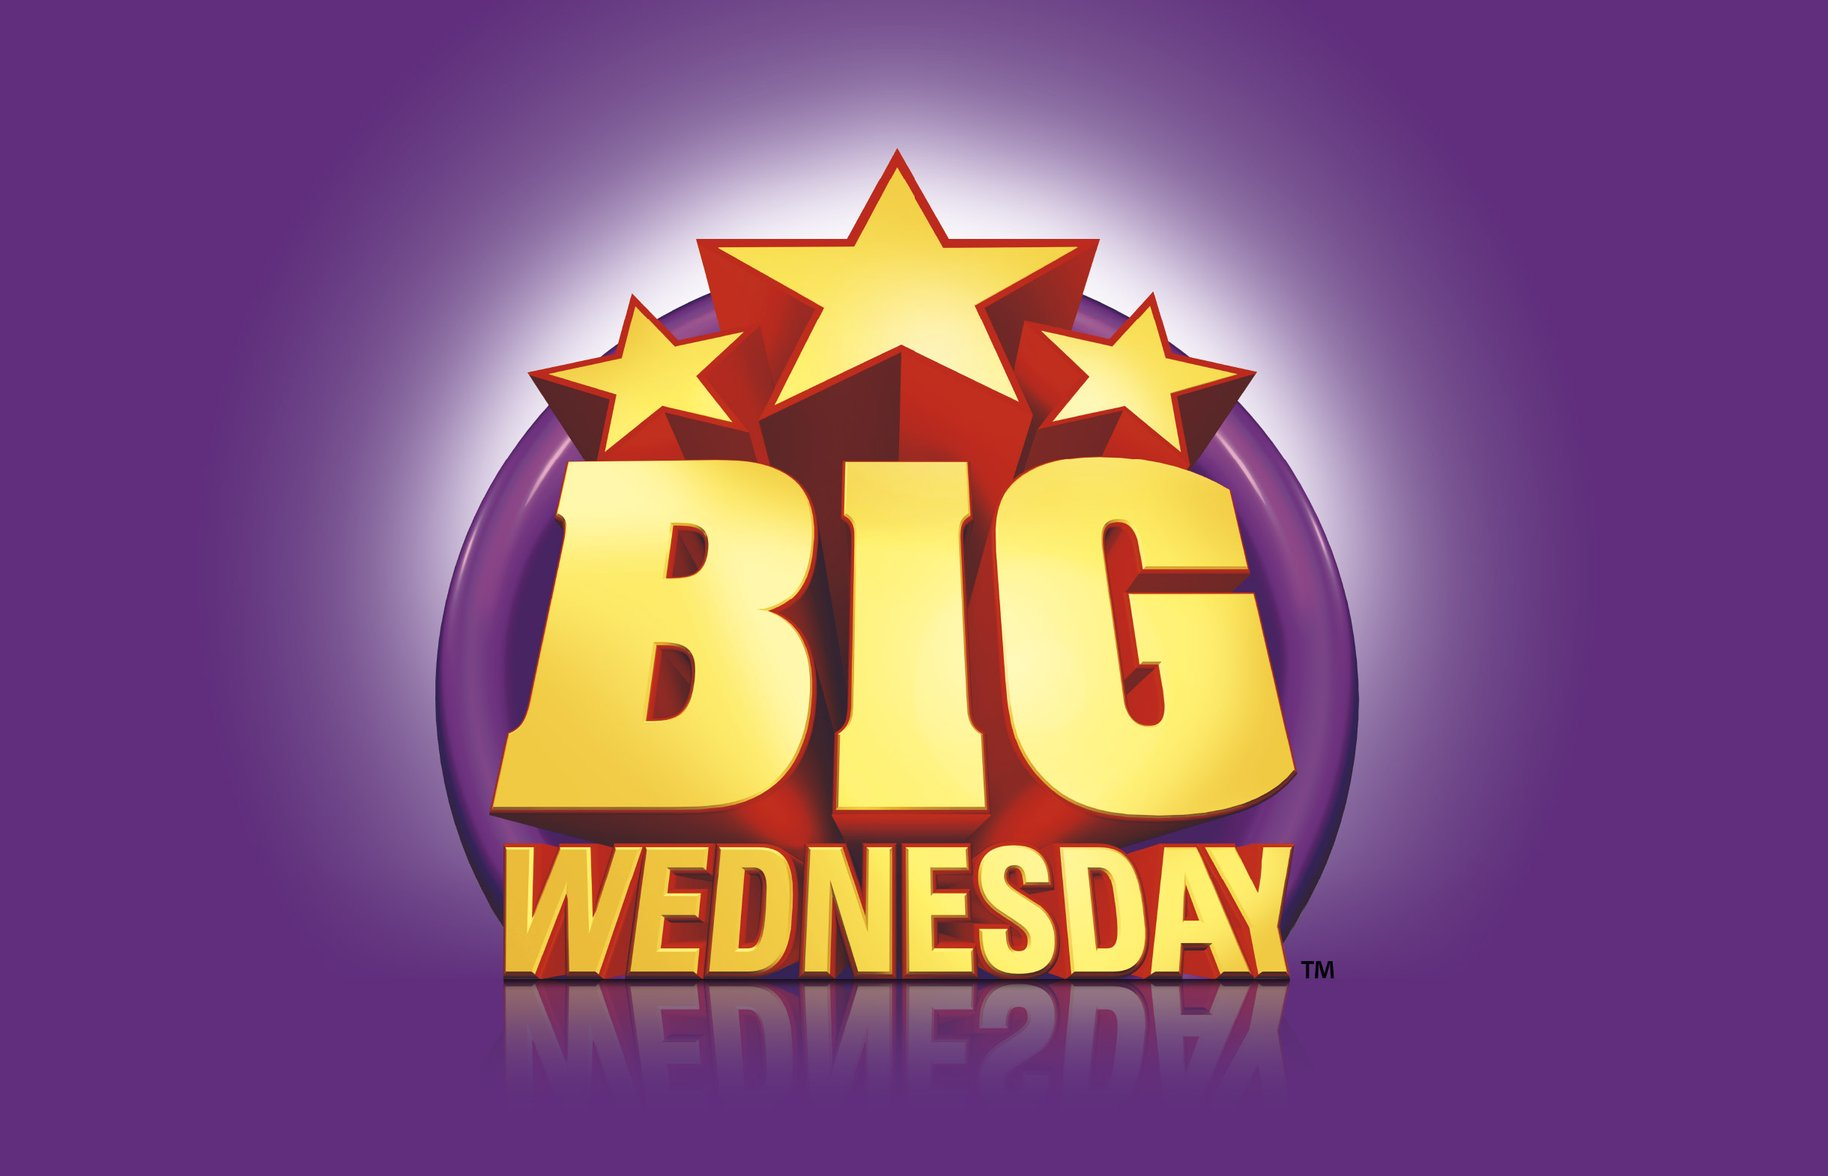 Big Wednesday logo 3d render design